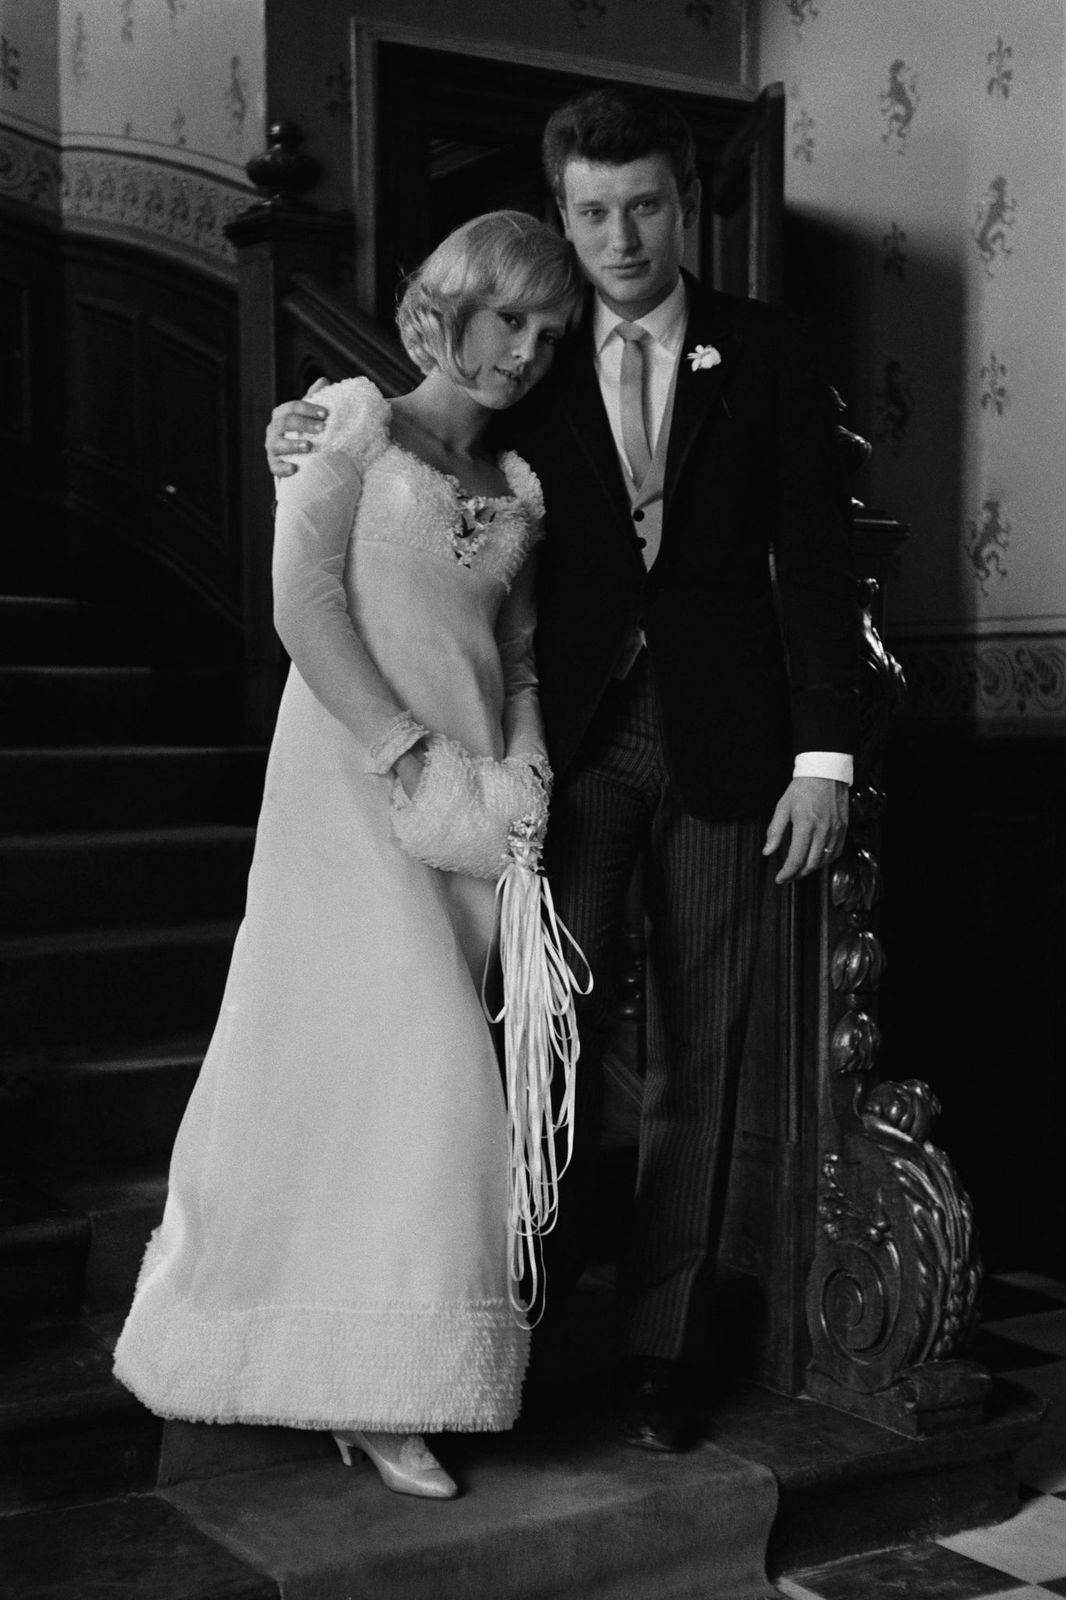 Johnny Hallyday et Sylvie Vartan le jour de leur mariage en 12 avril 1965 | Photo : Getty Images